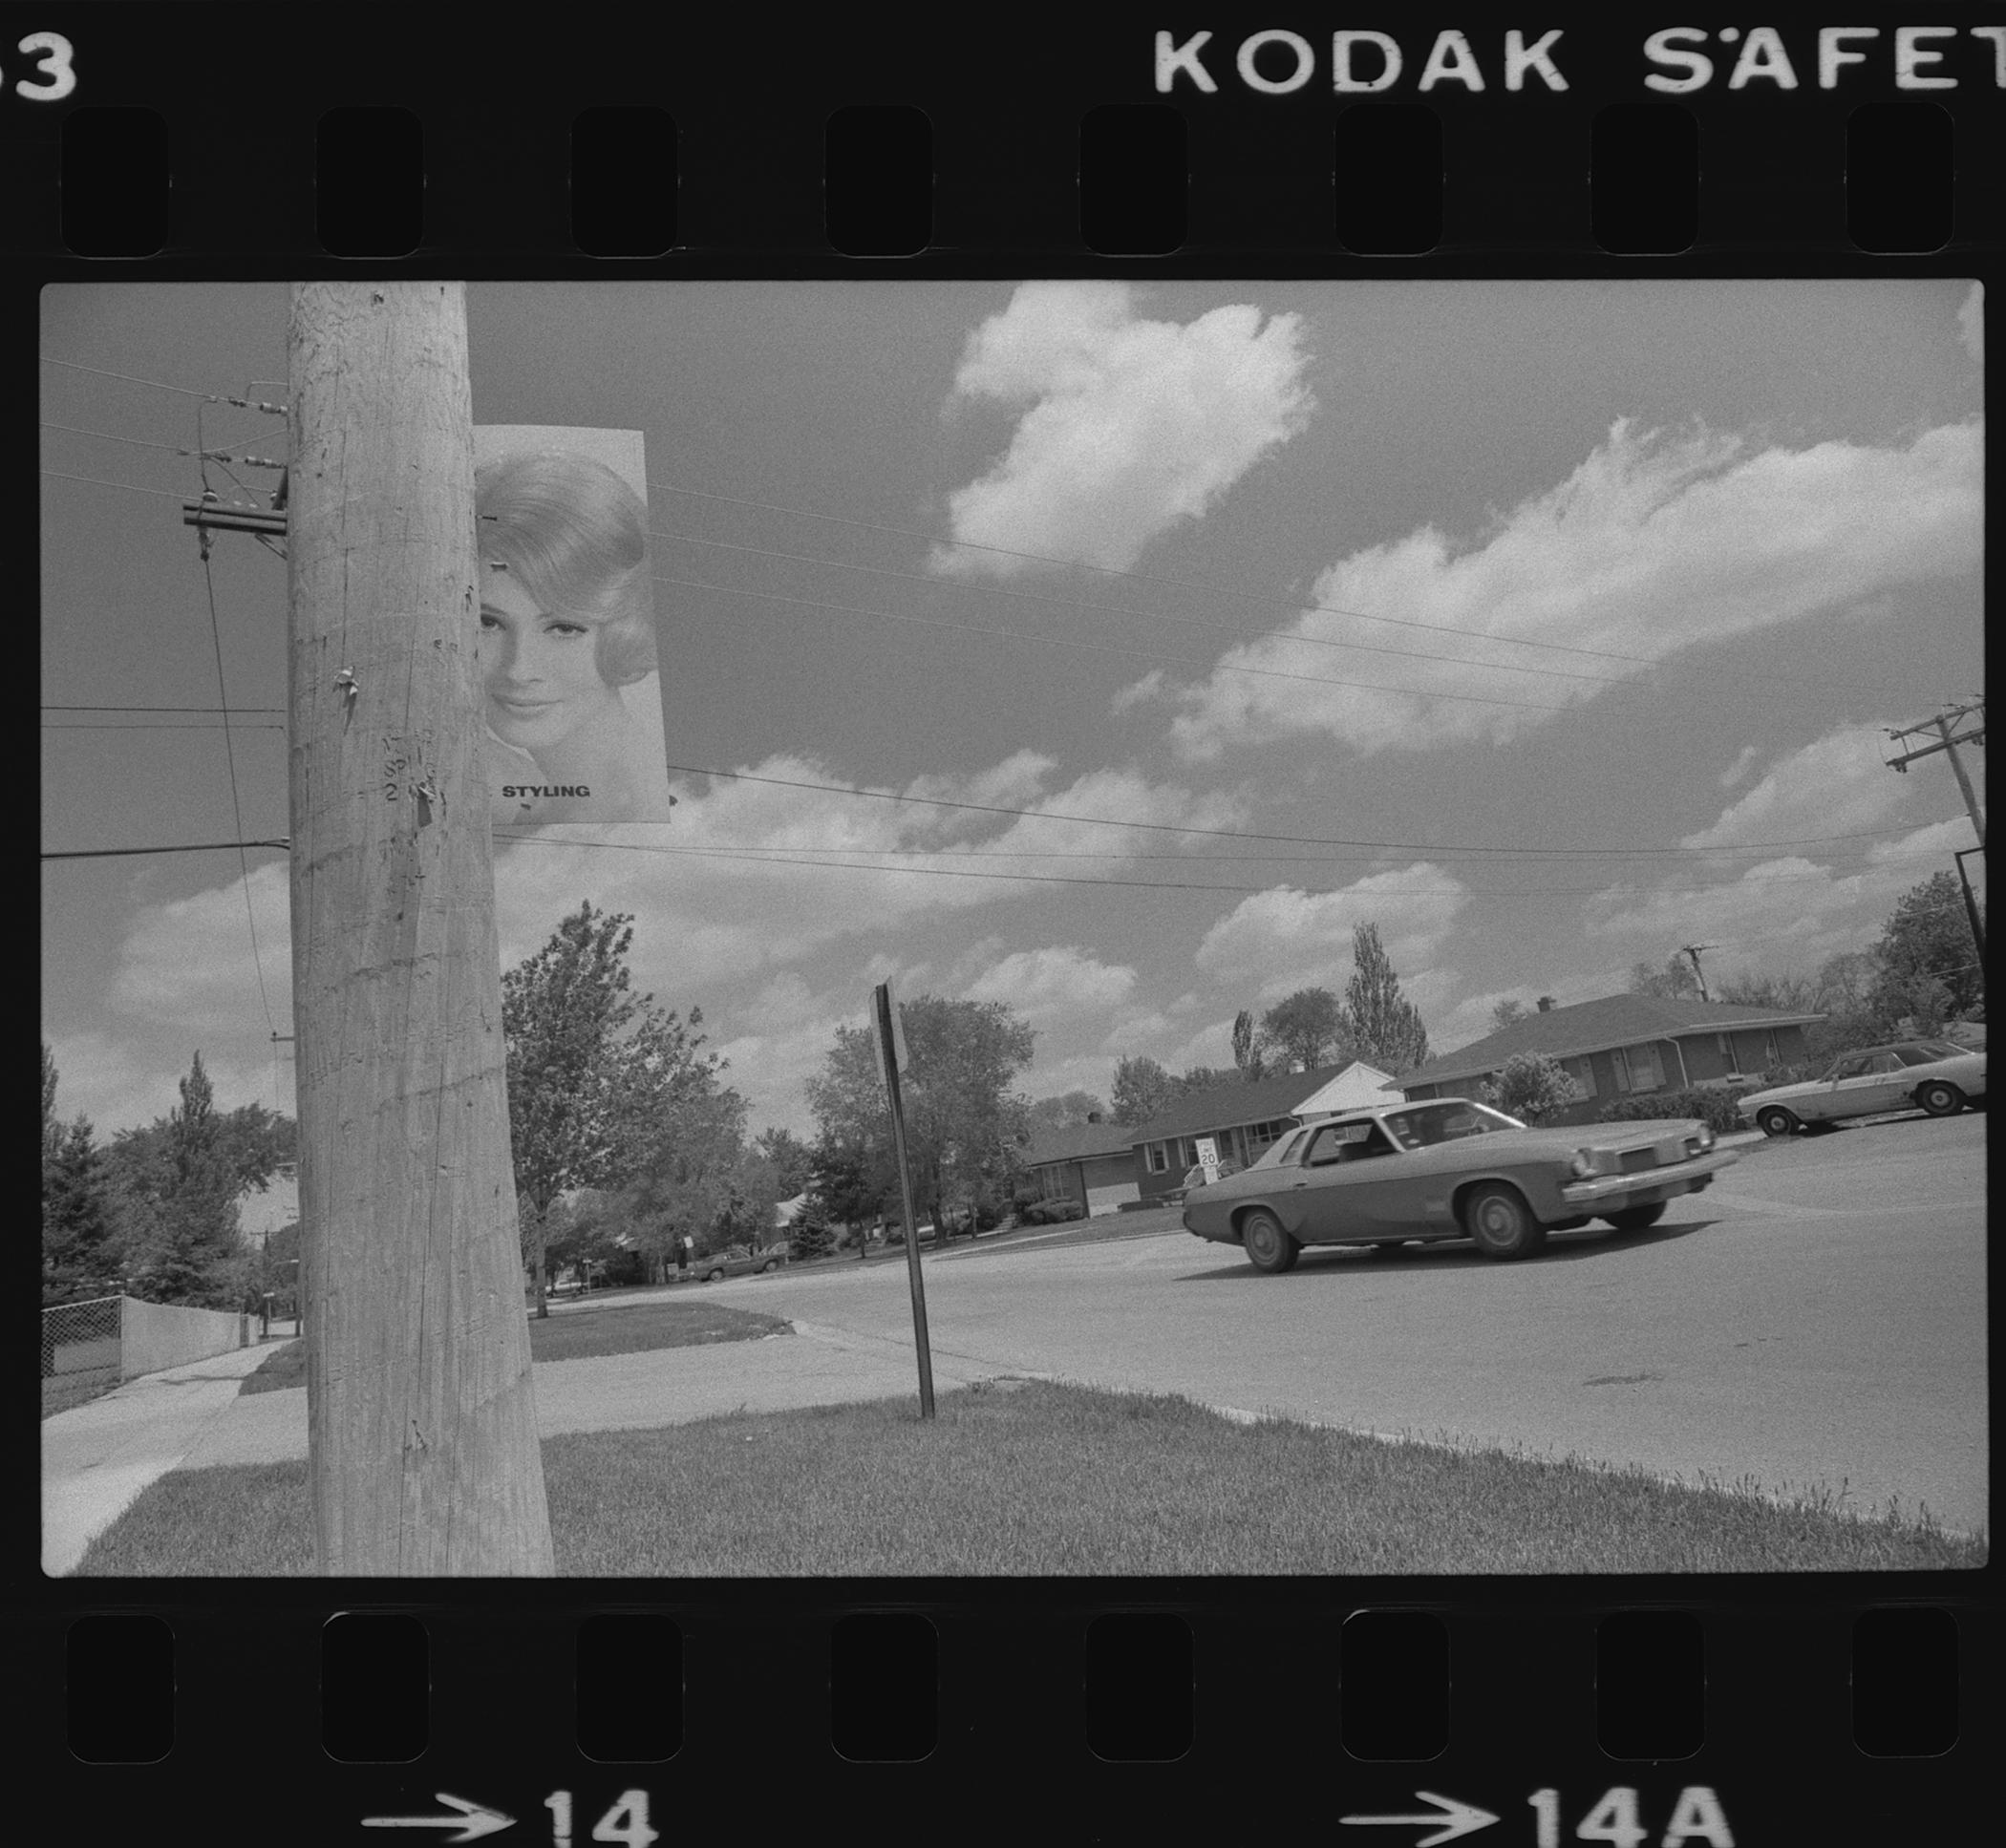 """A black-and-white film frame shows a car driving along a suburban street. In the foreground is a wooden utility pole affixed with a poster of a woman and the the word """"STYLING""""."""